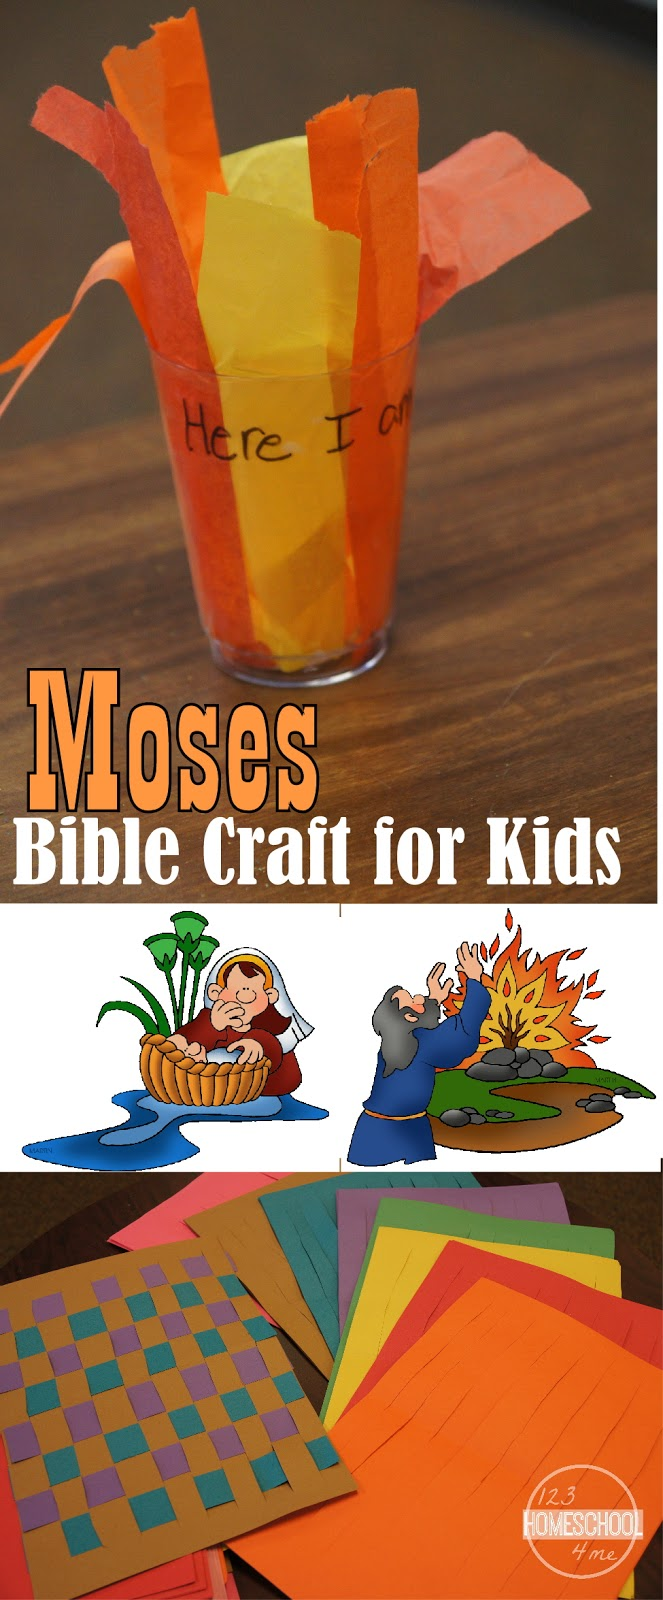 moses bible crafts for kids